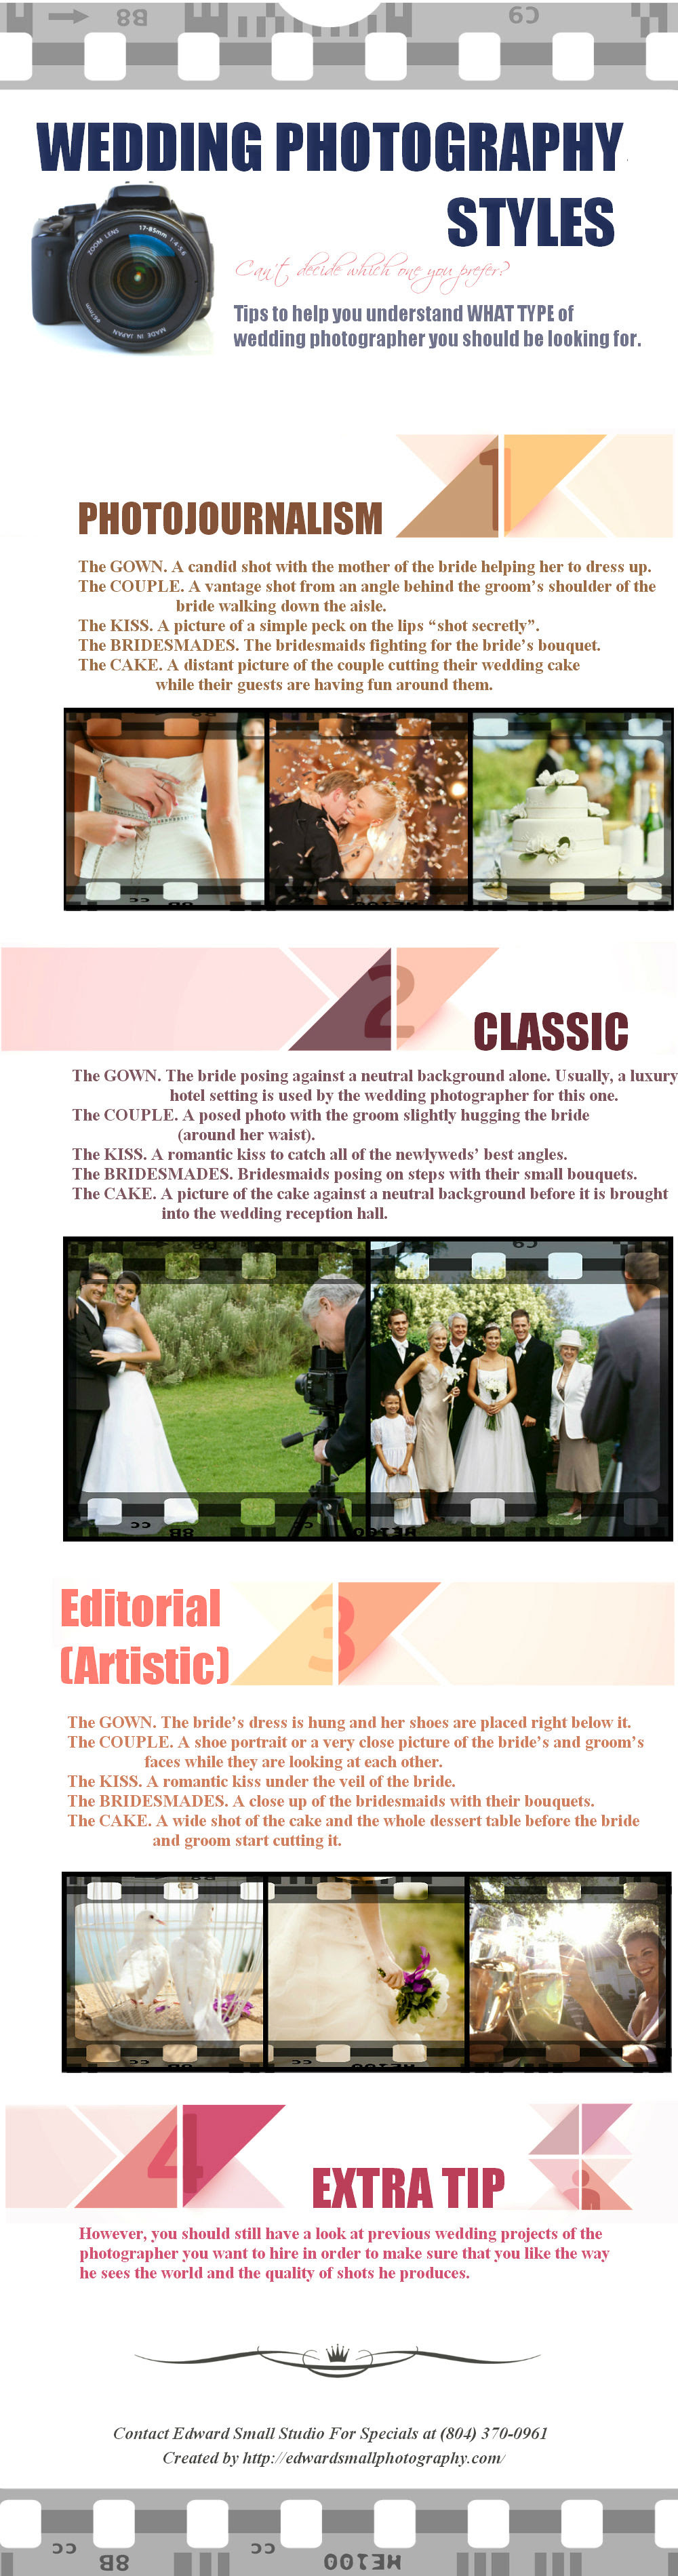 Infographic: Wedding Photography Styles